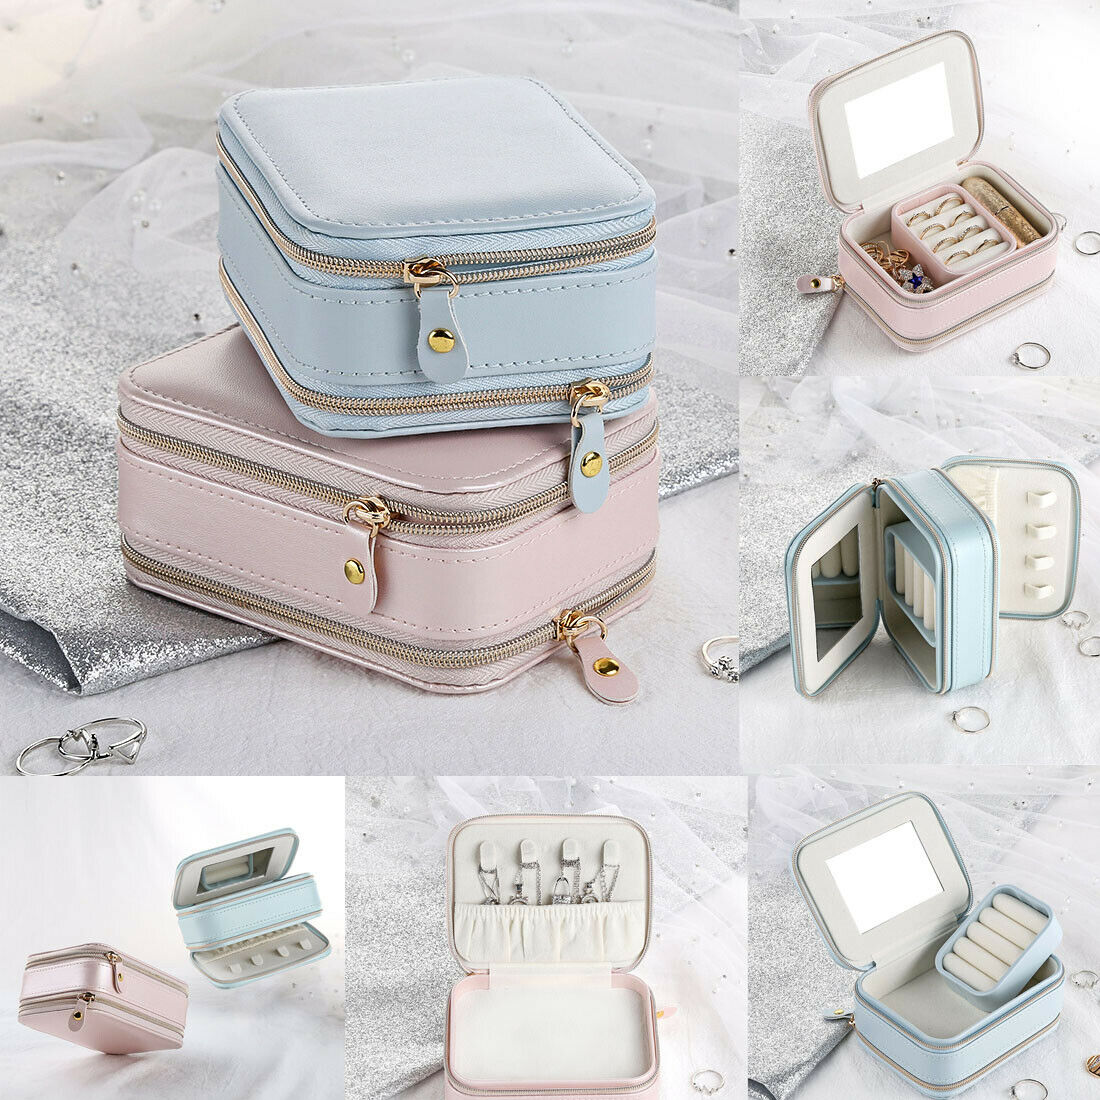 2019 Newest Portable Travel Jewelry Box Carrying Cases Organizer Outdoor Leather Ornaments Case Storage Jewelry Display Dropship